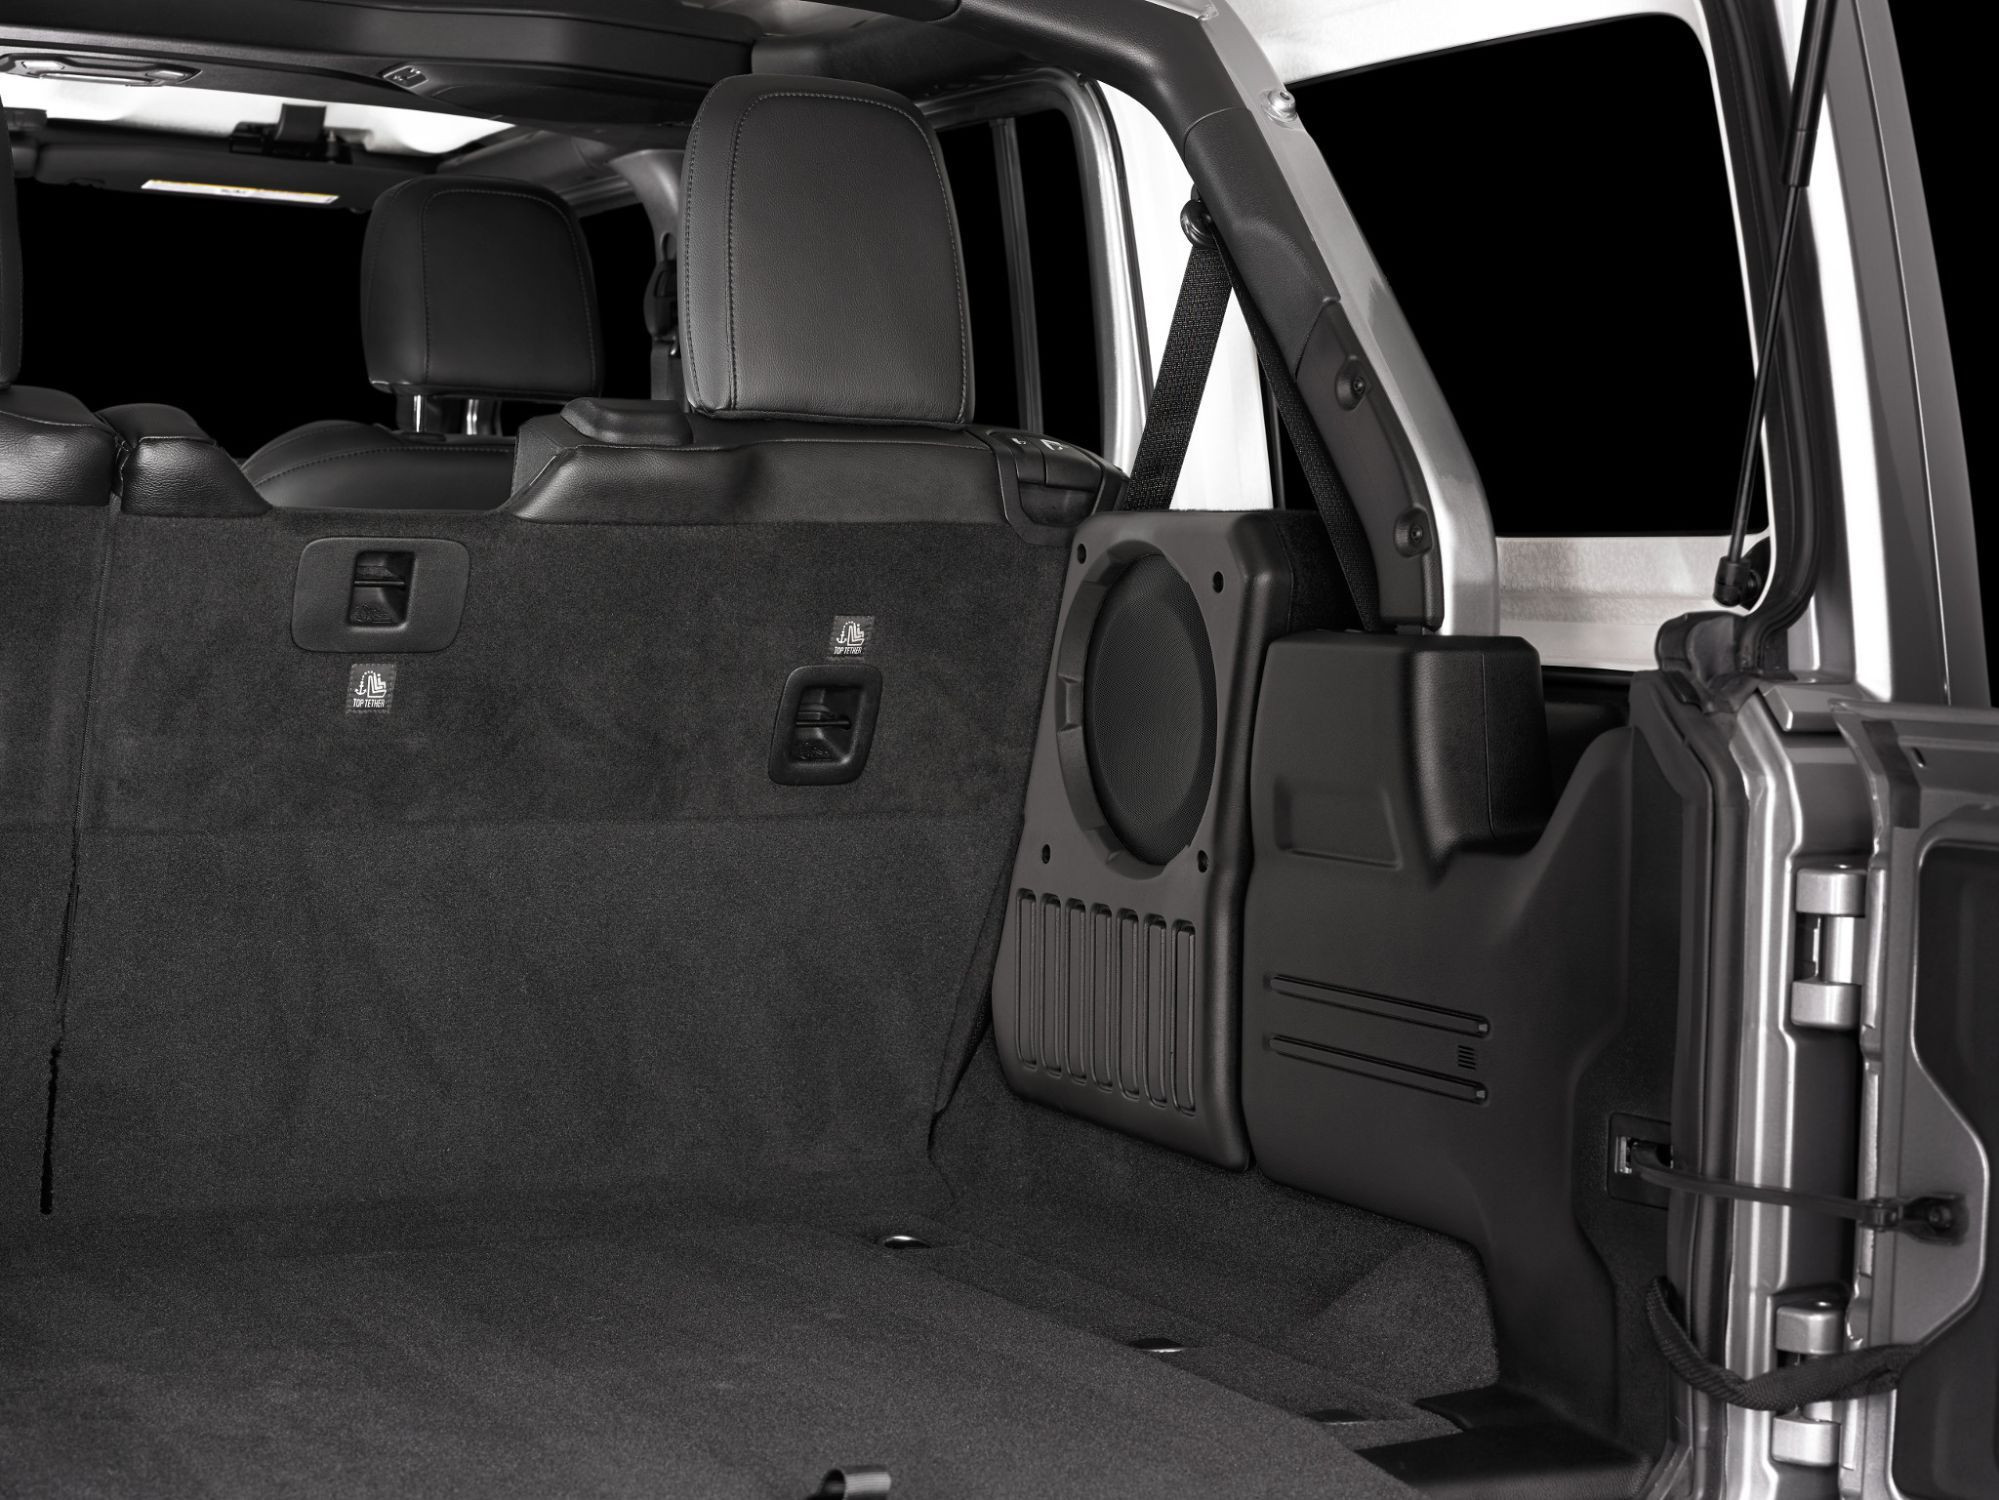 Image of the Jeep stealth box and sub installed showing how it does not impact the cargo area but boy it sure does put out the sound.